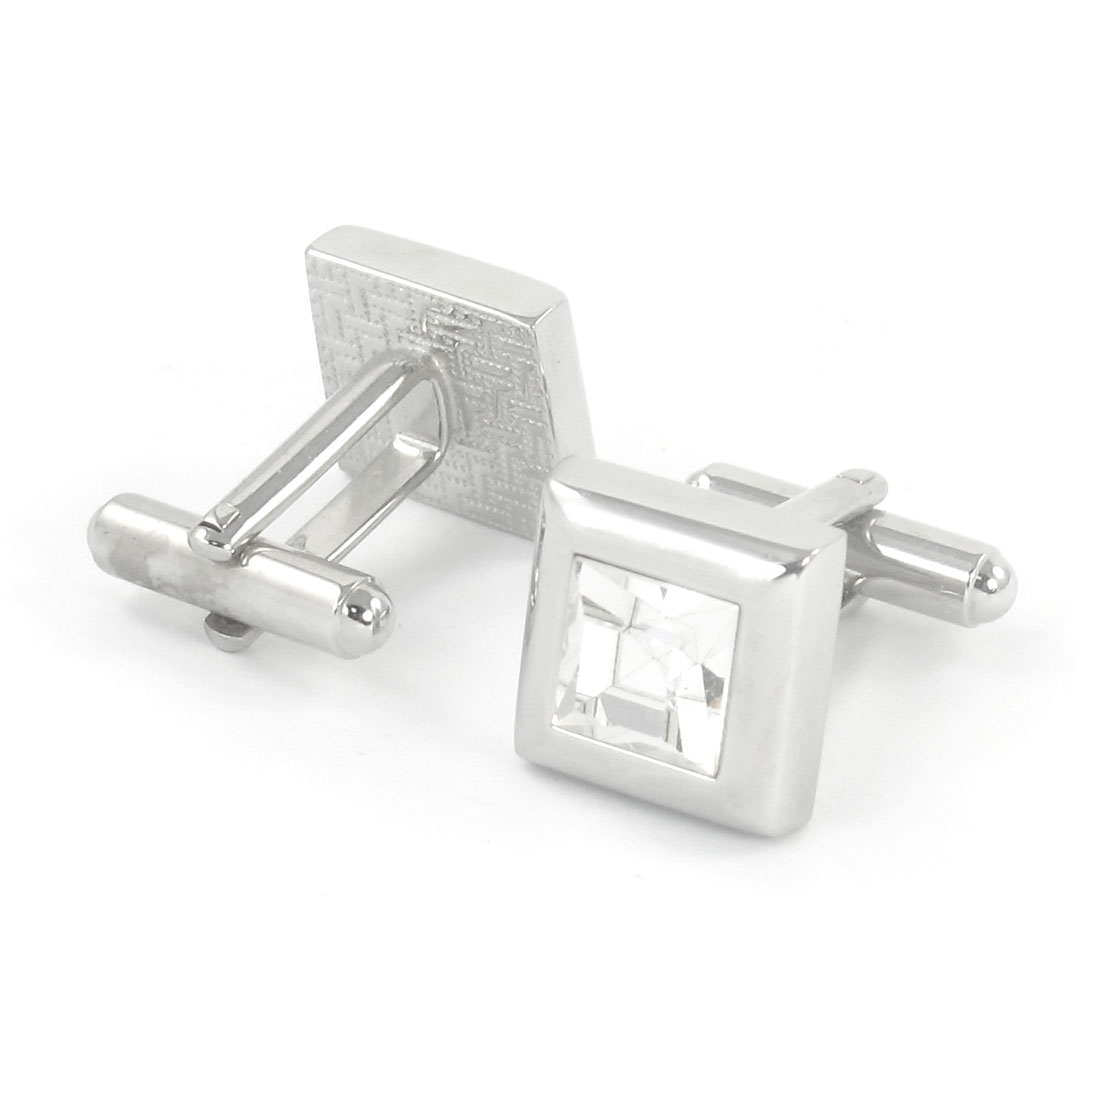 Pair Clear Faux Crystal Inlaid Square Tuxedo Decor Cuff Links for Groom Man